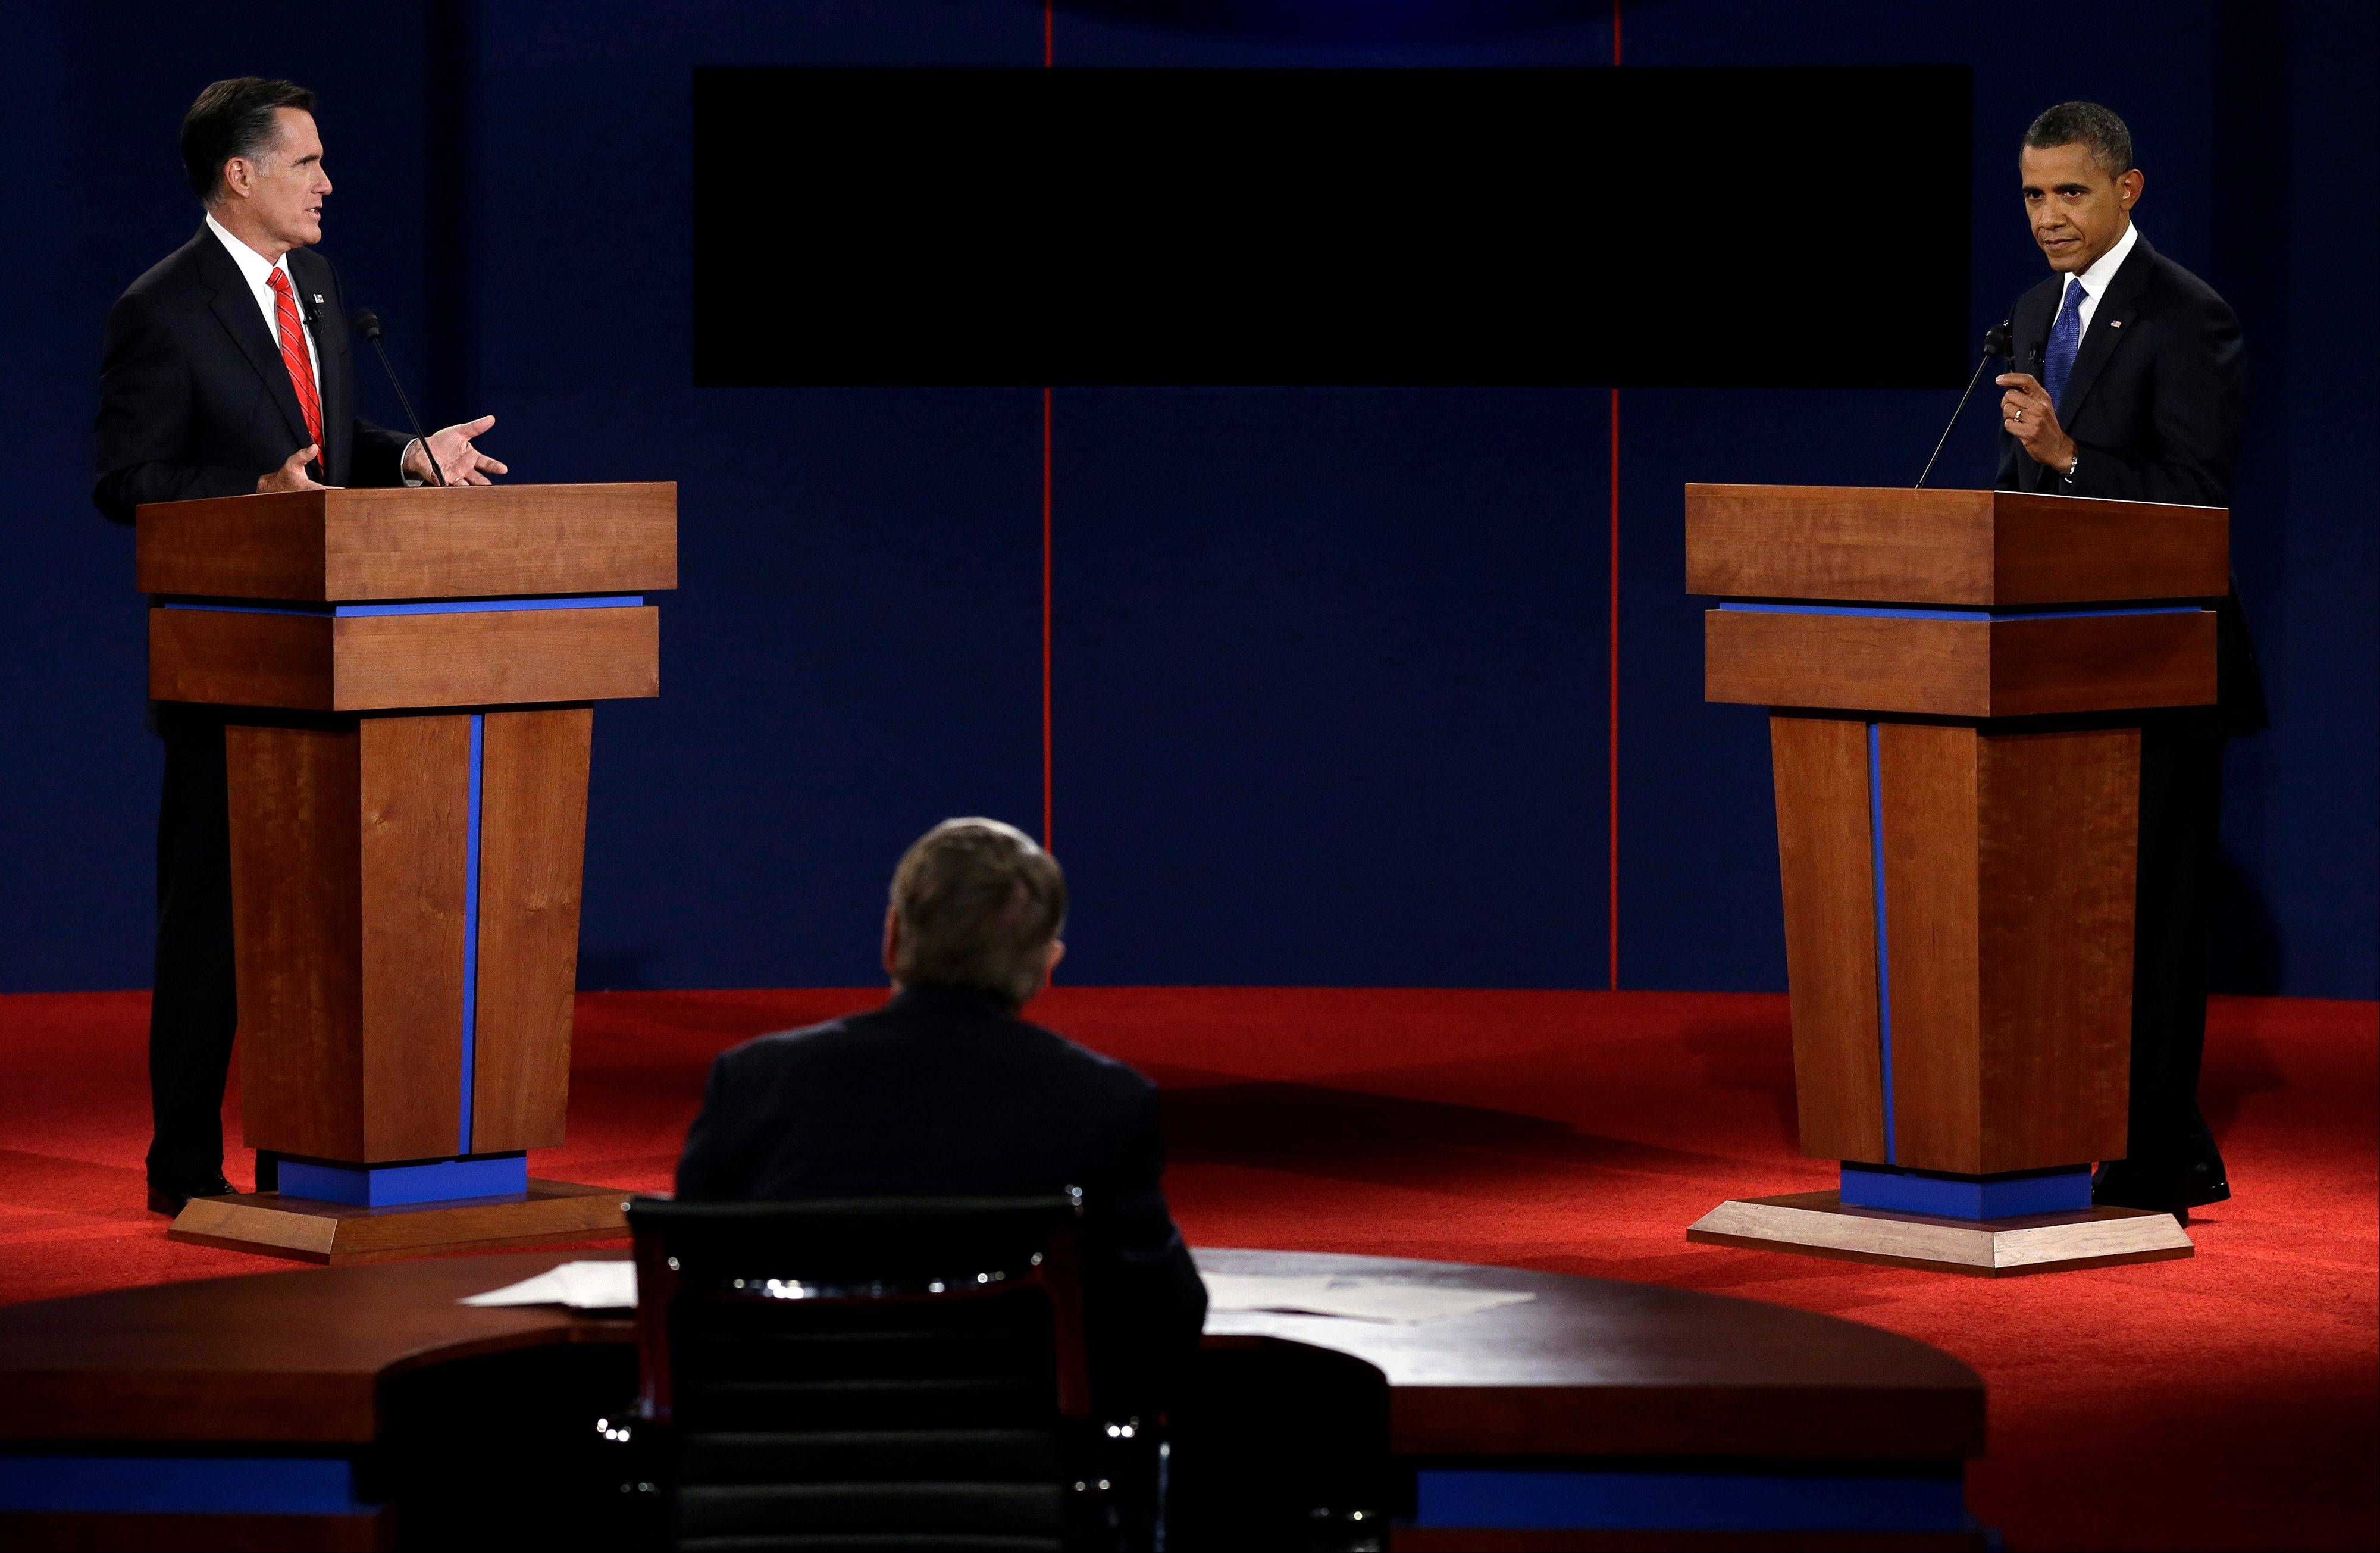 Republican presidential candidate and former Massachusetts Gov. Mitt Romney and President Barack Obama participate in the first presidential debate Oct. 3 at the University of Denver, in Denver. Jim Lehrer, center, served as moderator.